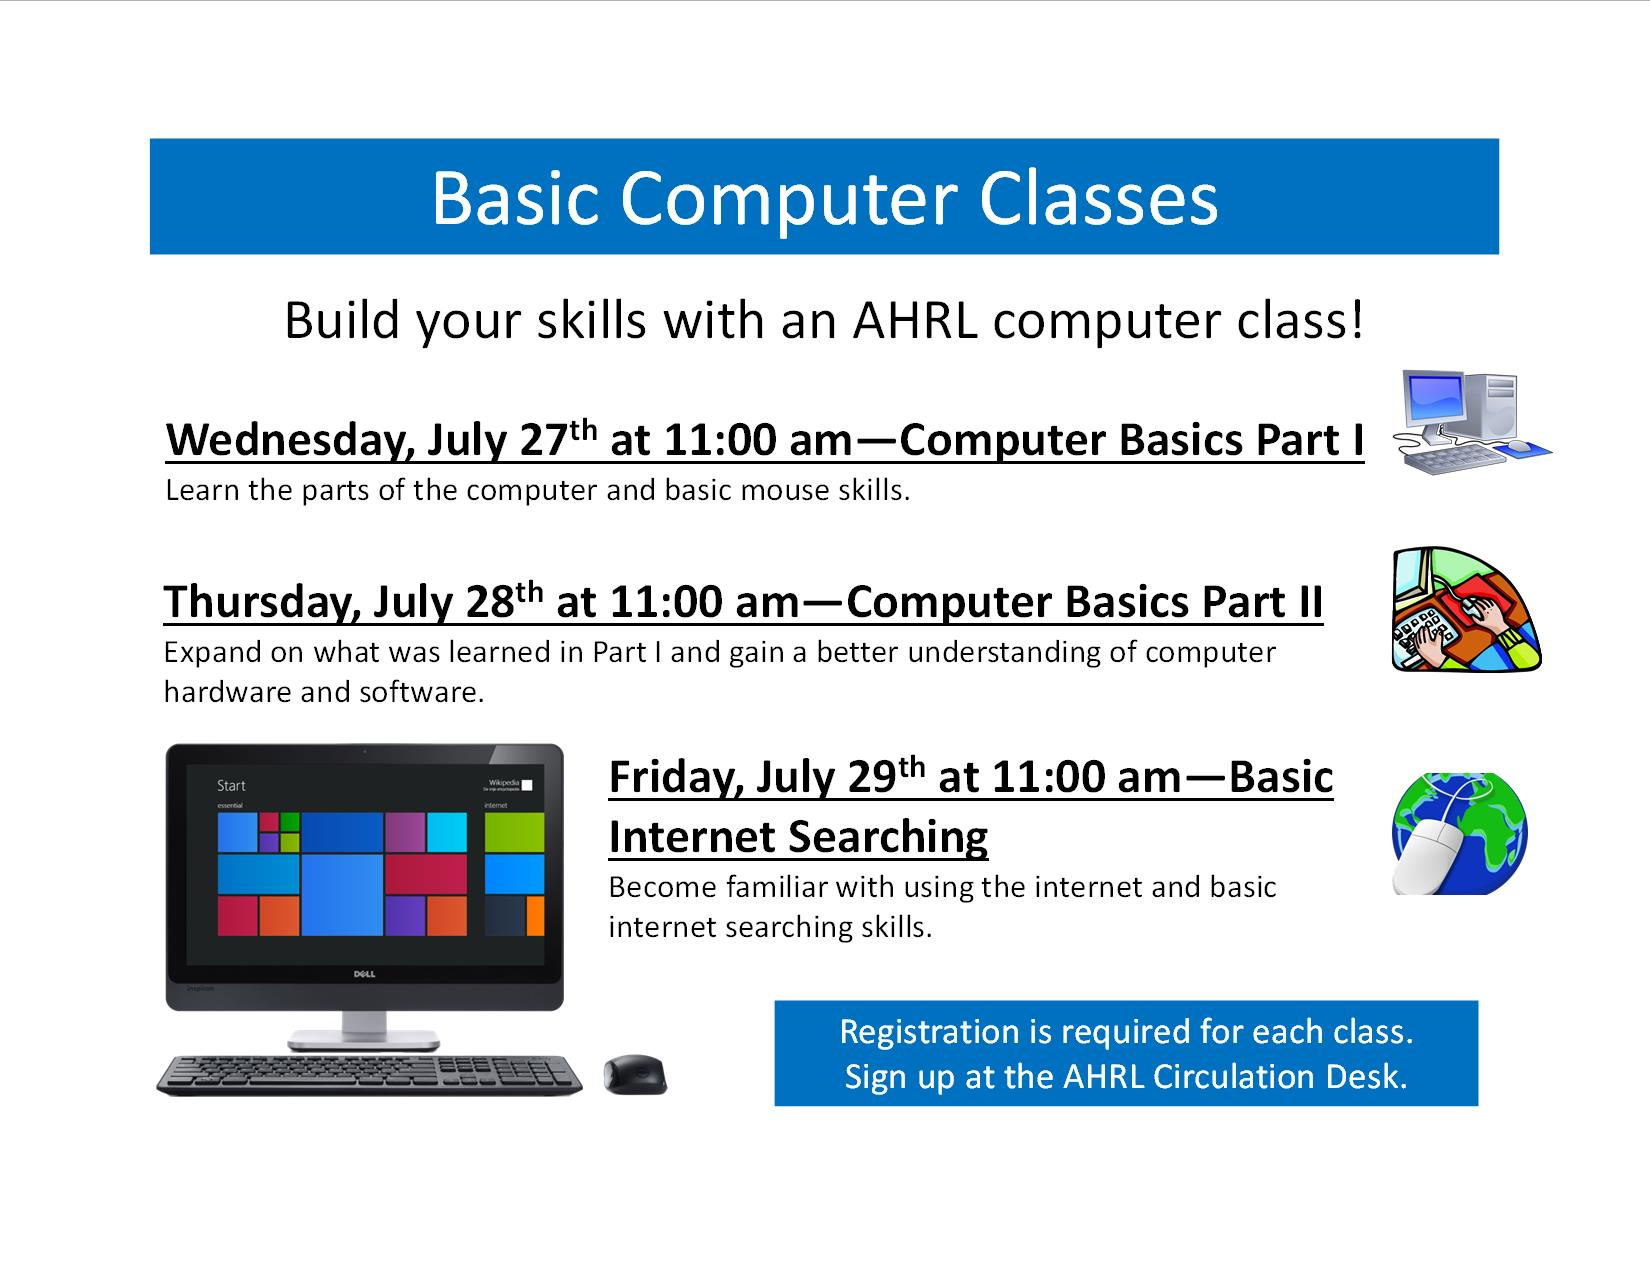 Basic Computer Classes Being Offered At Ahrl